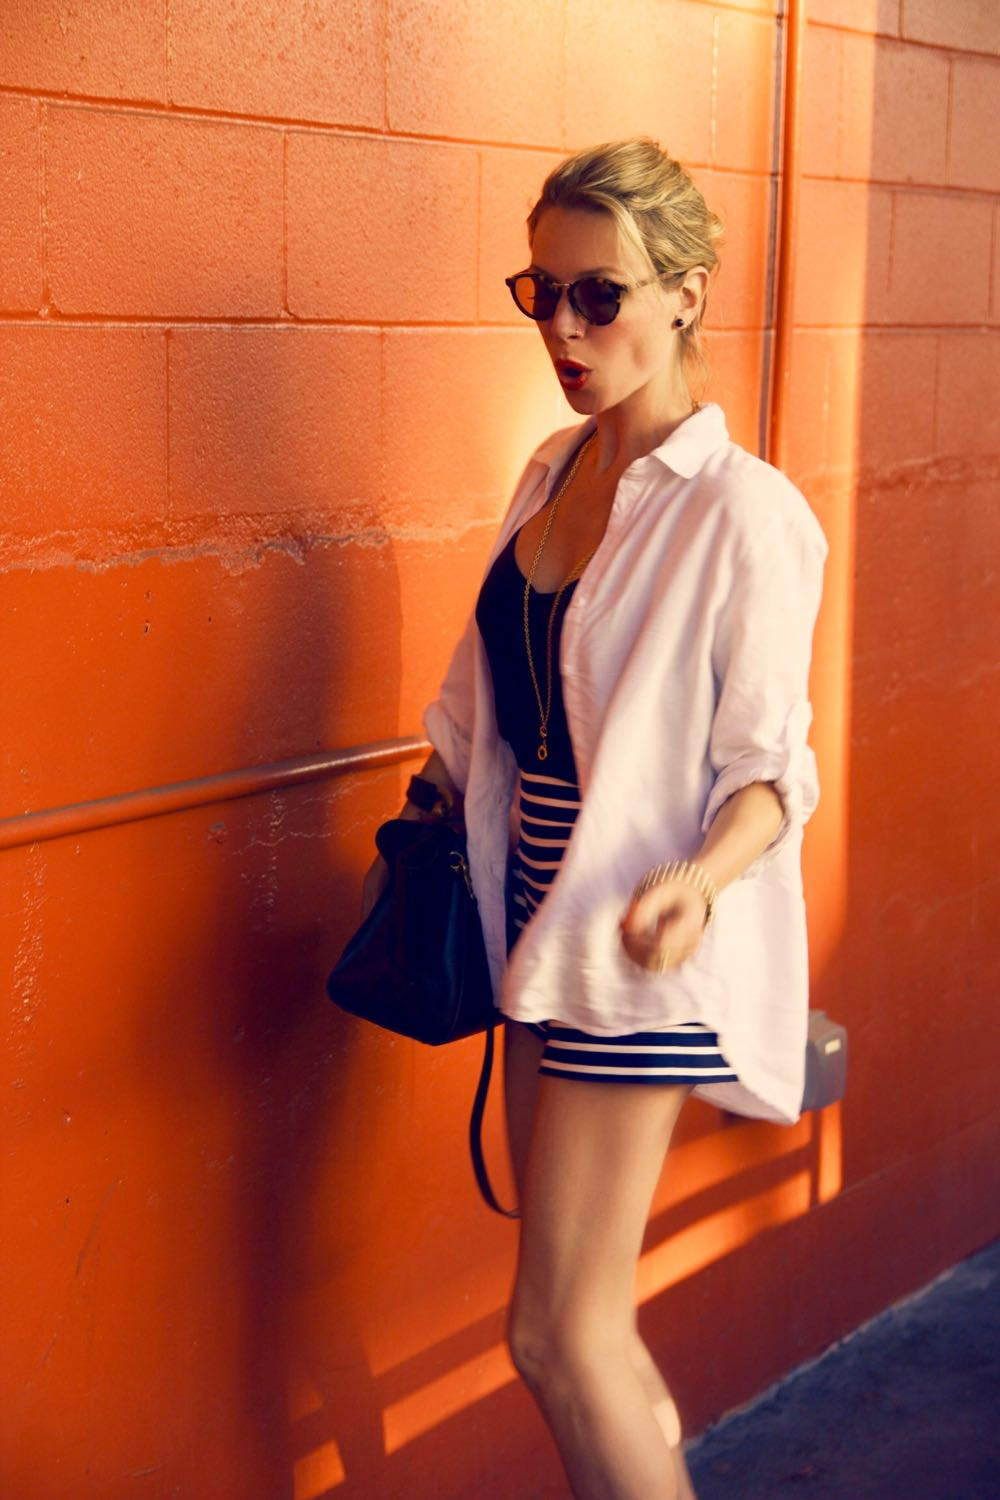 White shirt with blue and white striped shorts